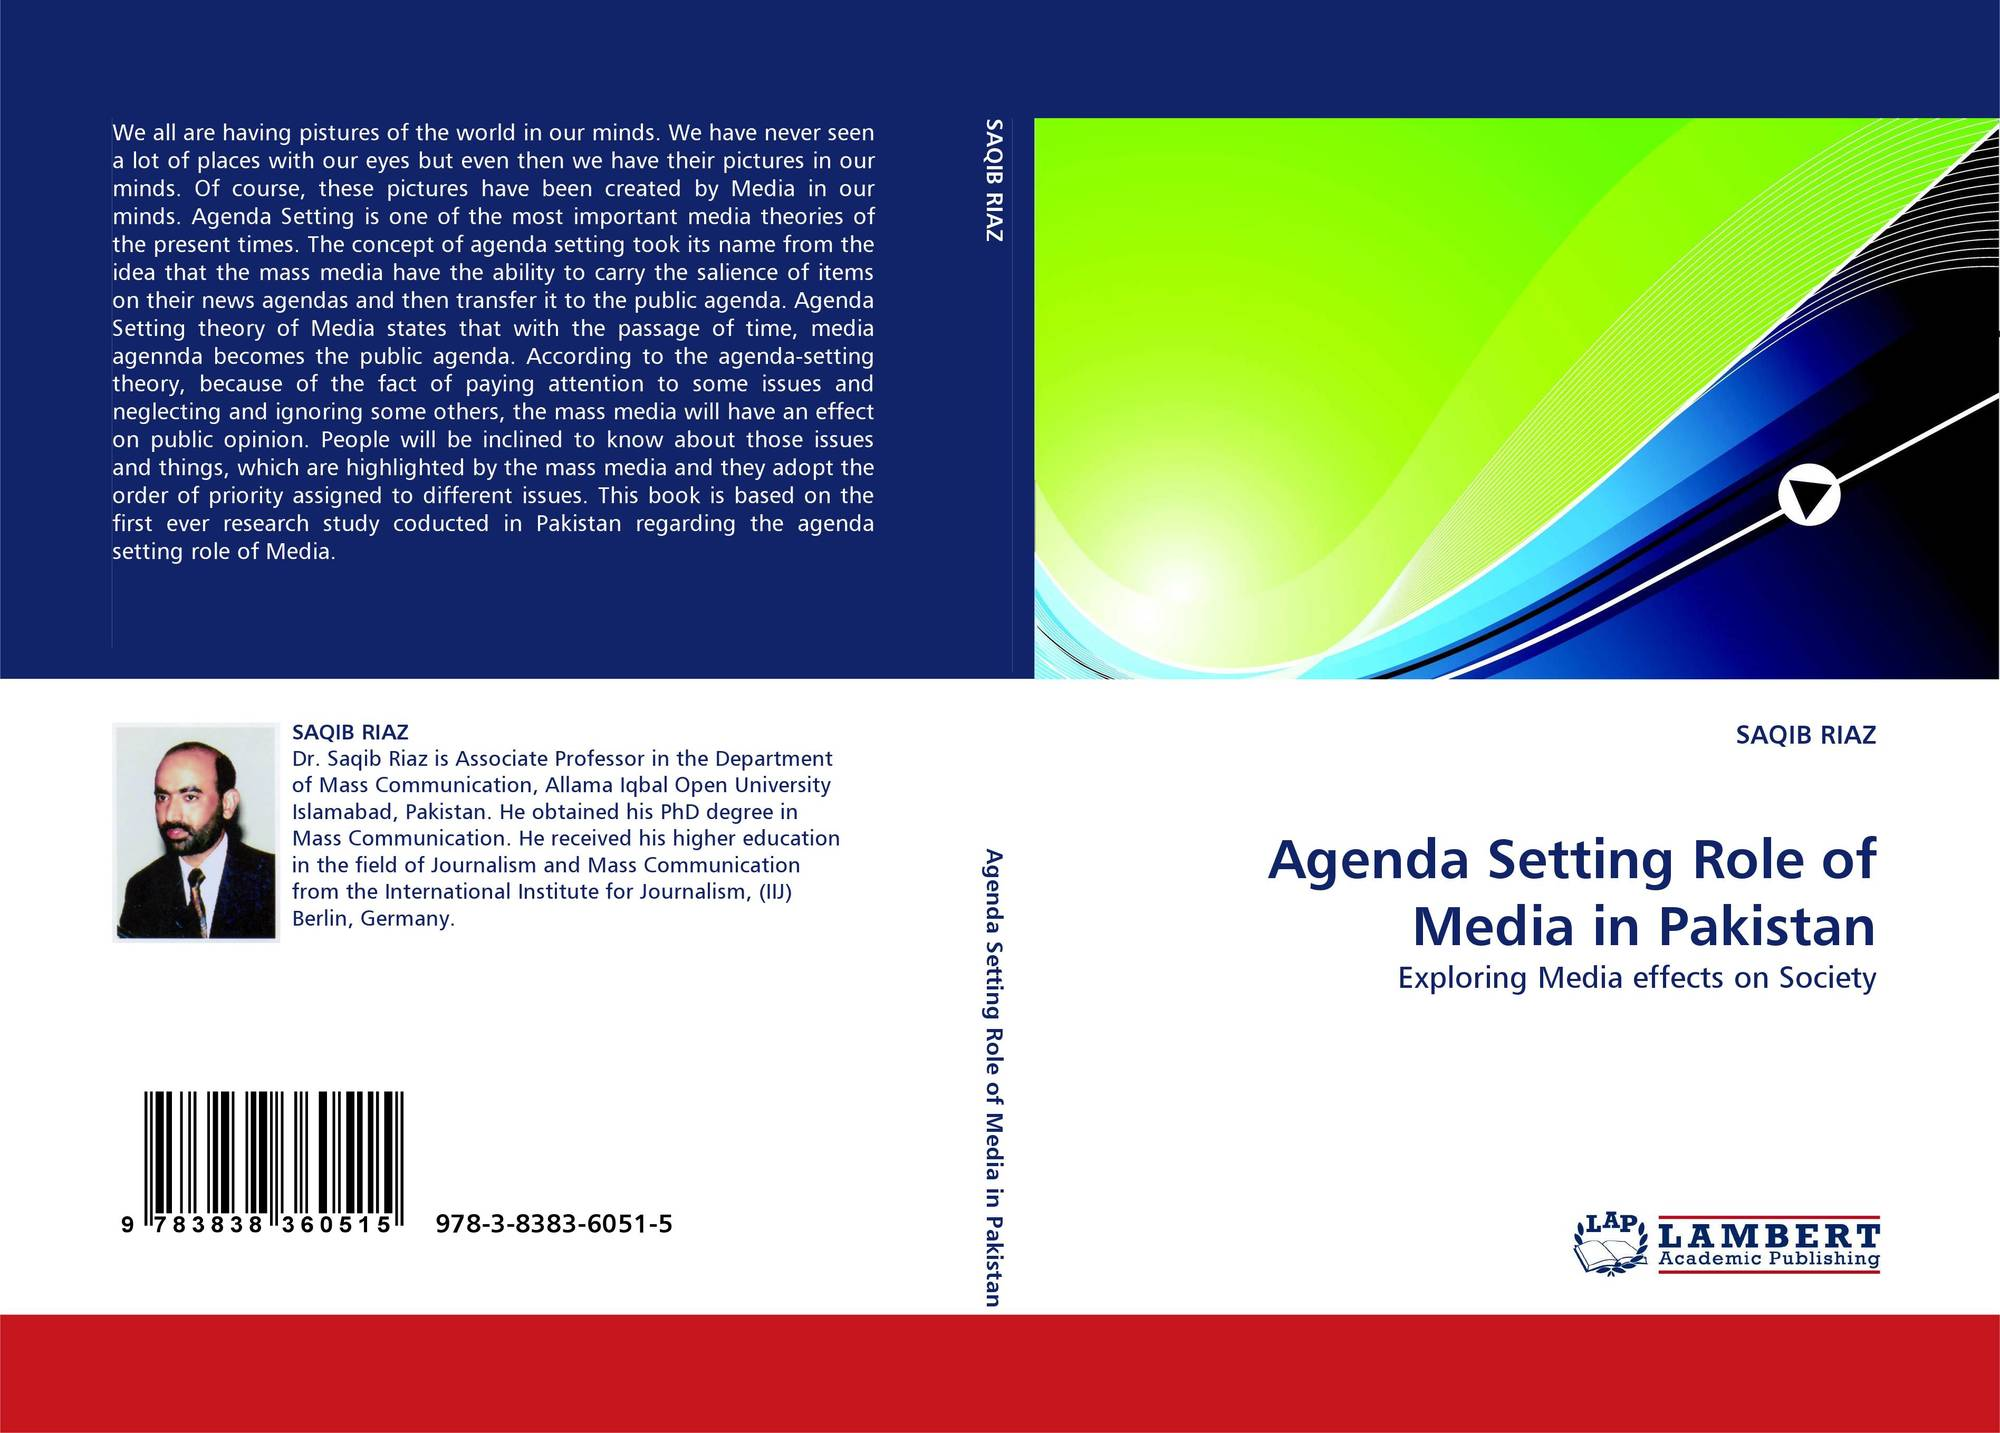 agenda setting theory examples in pakistan Agenda setting role of media in pakistan: exploring media effects on society   agenda setting theory of media states that with the passage of time, media.